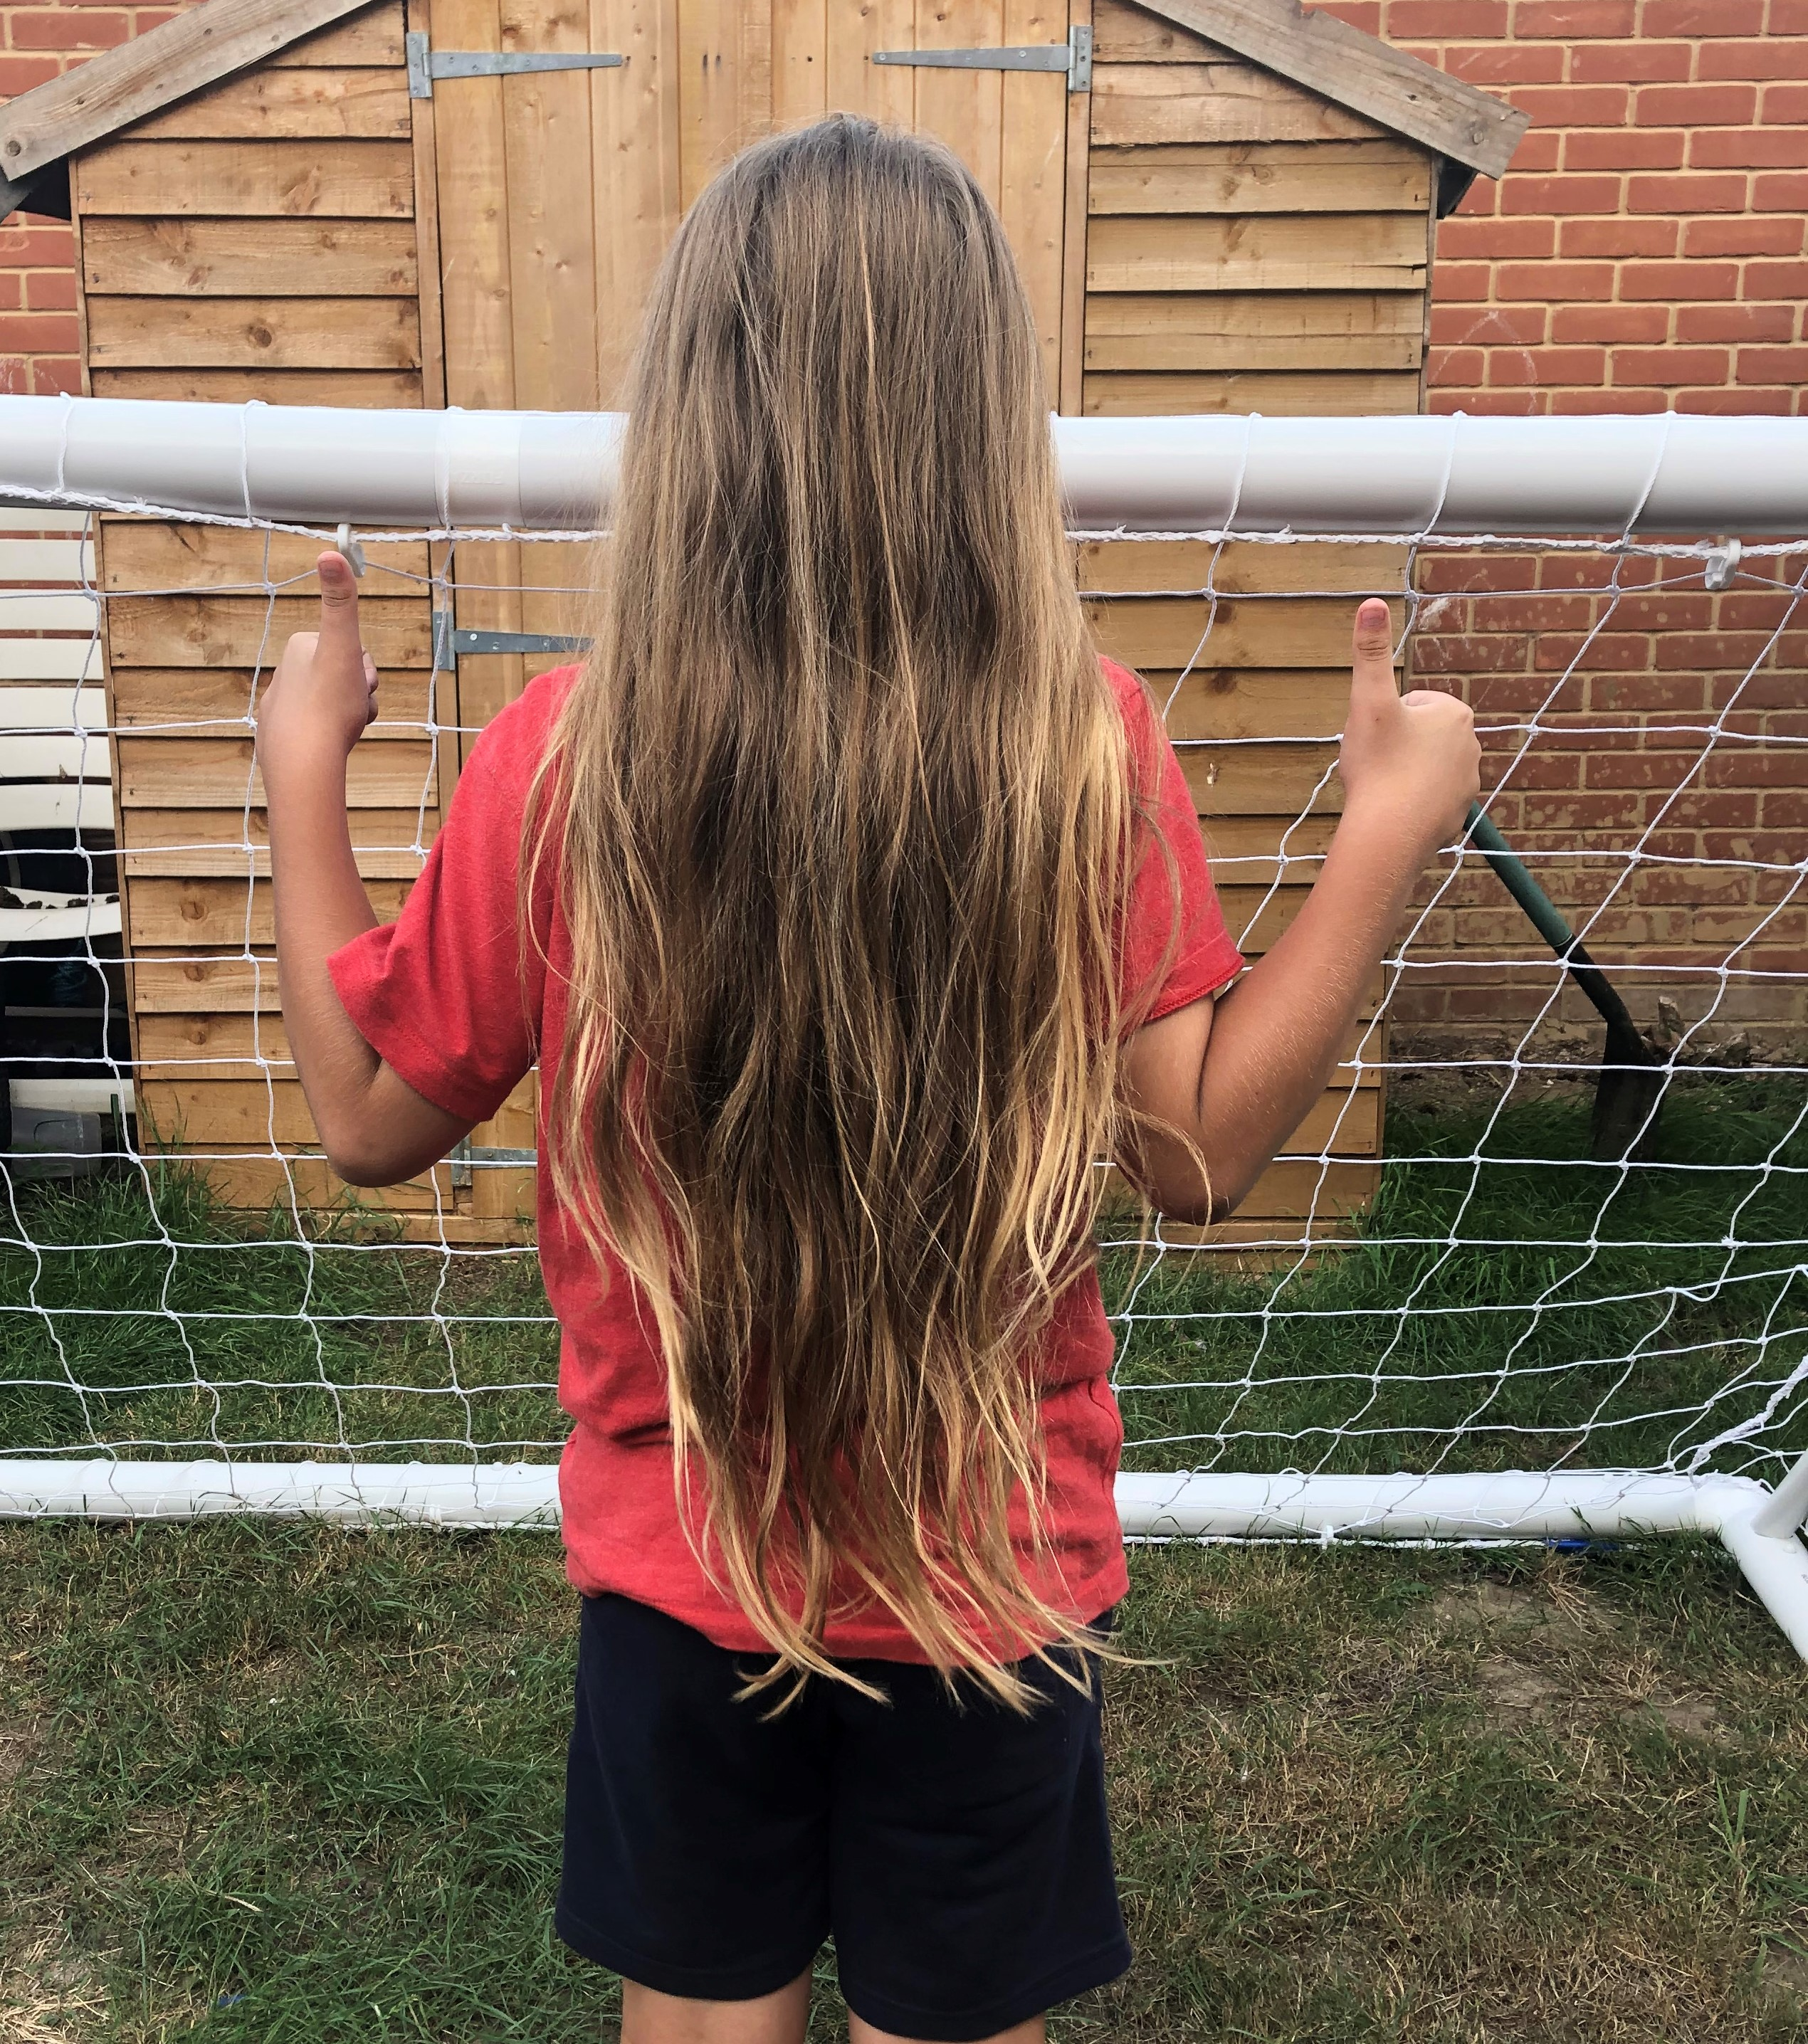 Boy Inspired By Gareth Bale S Long Hair Will Have First Ever Cut For Charity Express Star